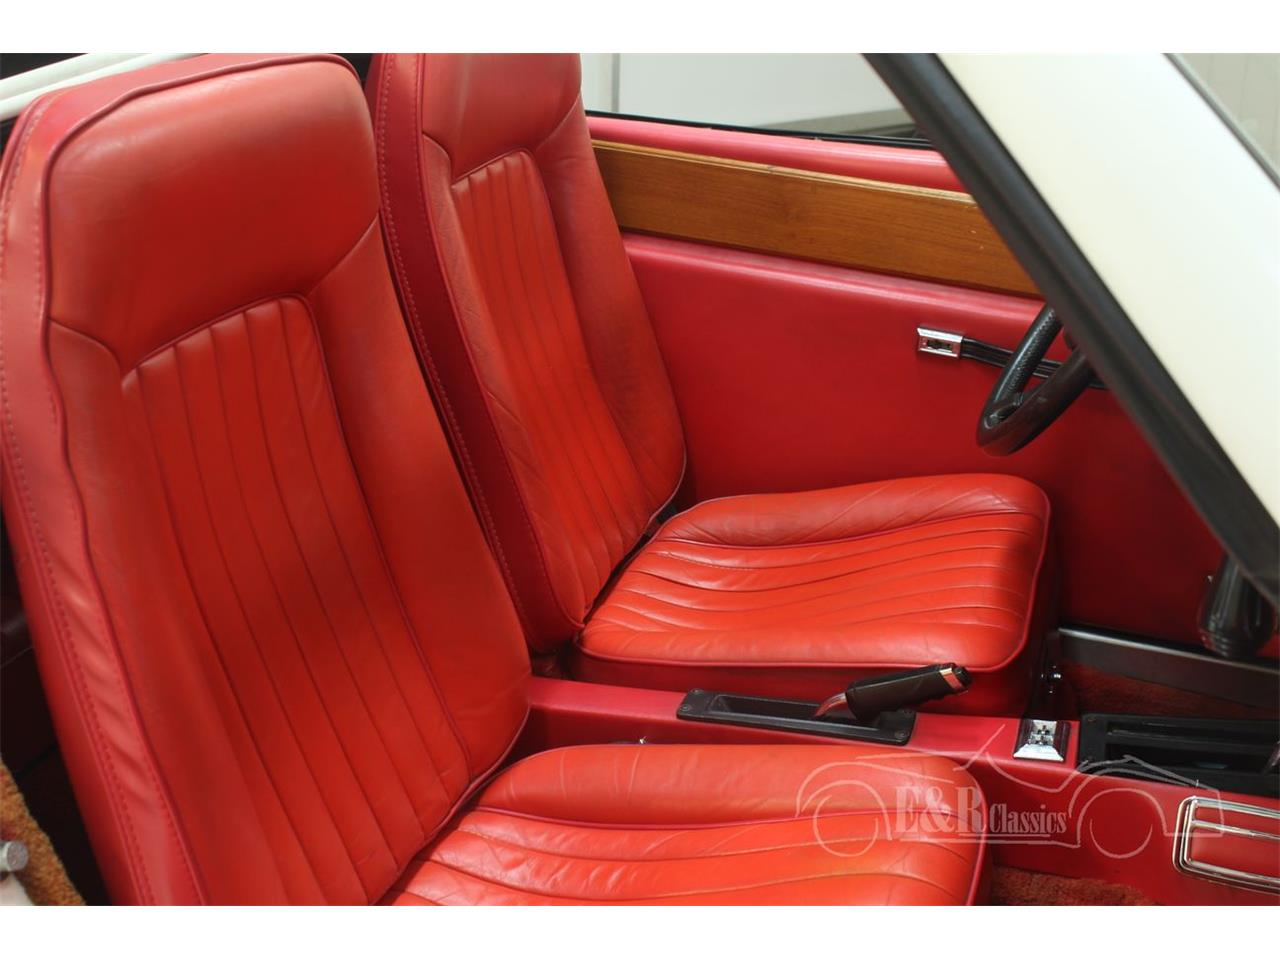 Large Picture of 1982 Excalibur Series IV Phaeton located in noord brabant Offered by E & R Classics - Q3GF